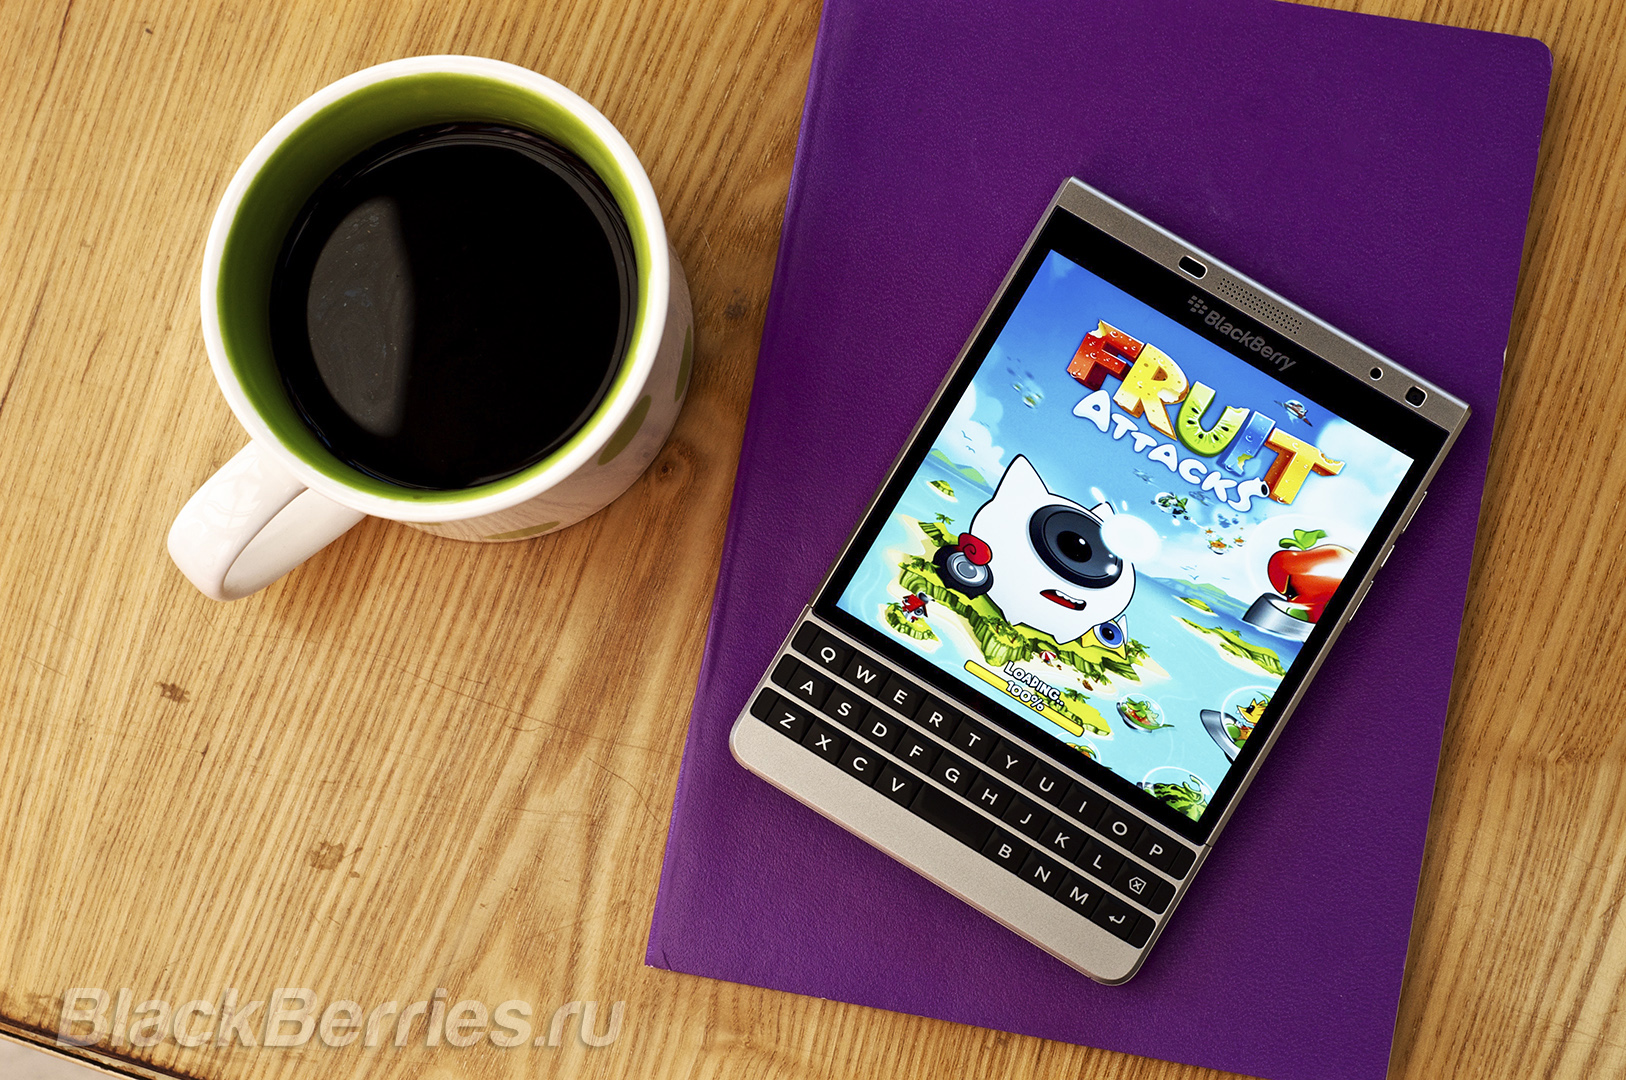 BlackBerry-Passport-Silver-Edition-Review-21